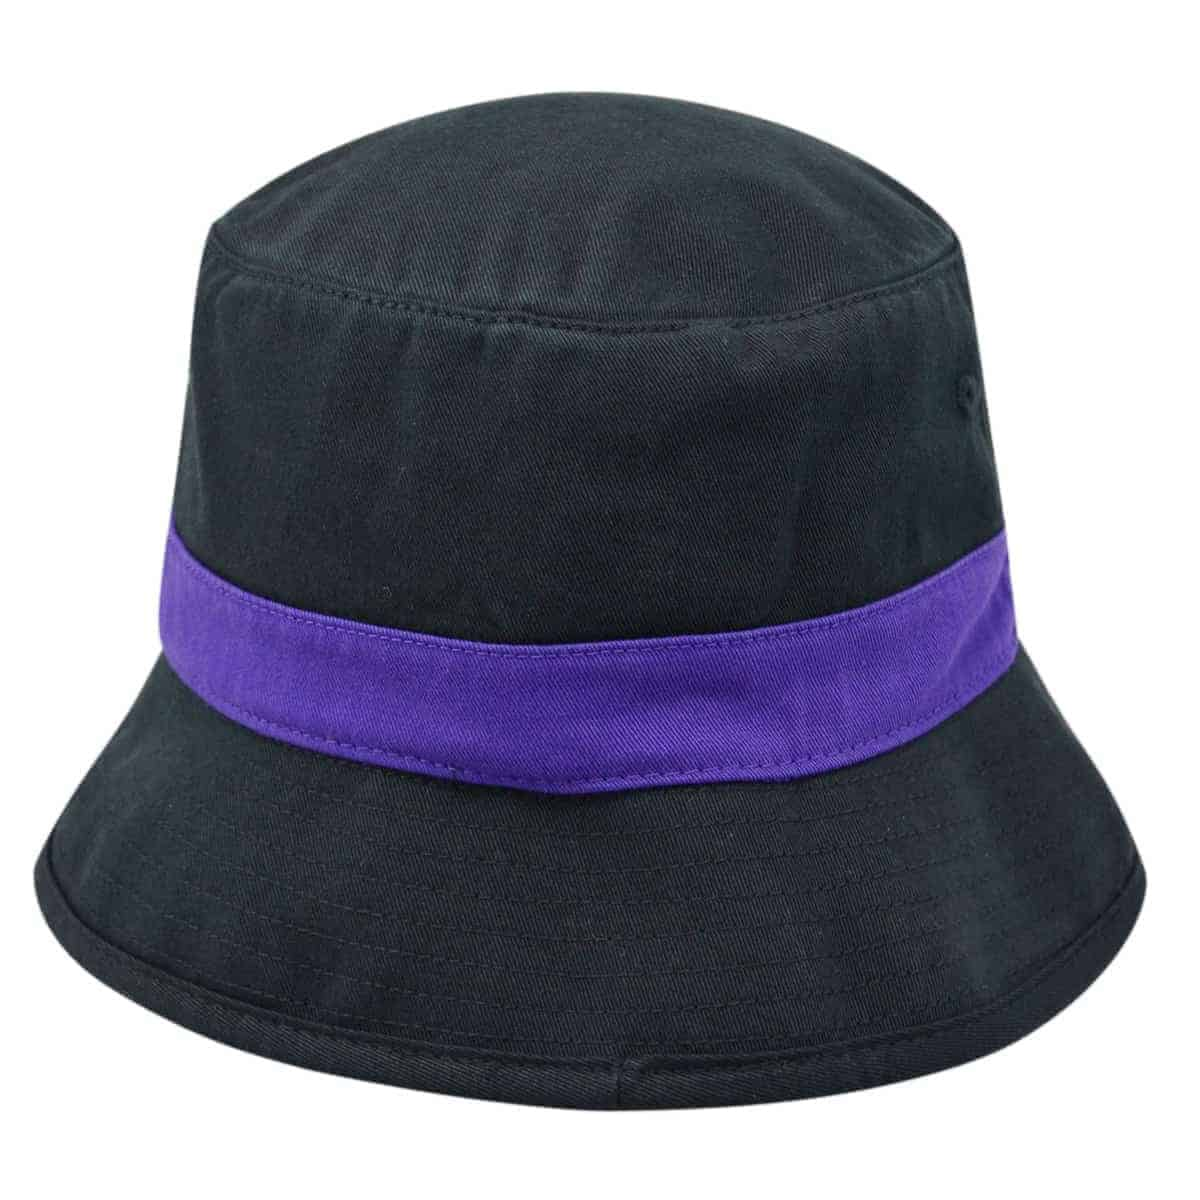 ee6418d9e8955 Northwestern Wildcats Black Floppy Bucket Hat with N-Cat Design